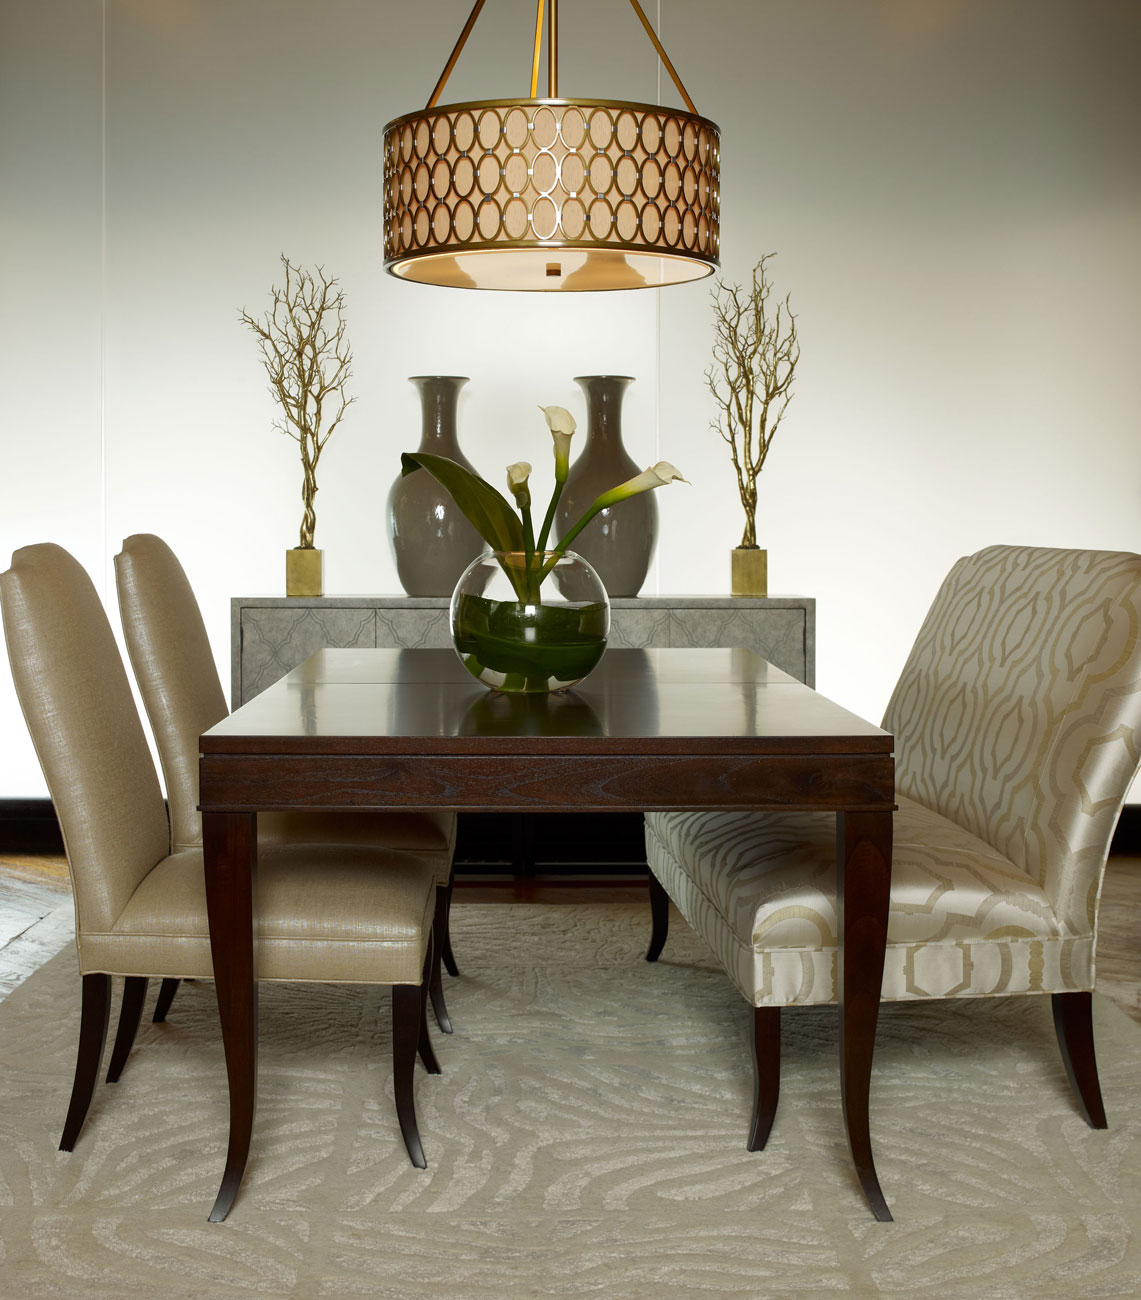 Modern Furniture: 2013 Candice Olson\'s Dining Room Collection